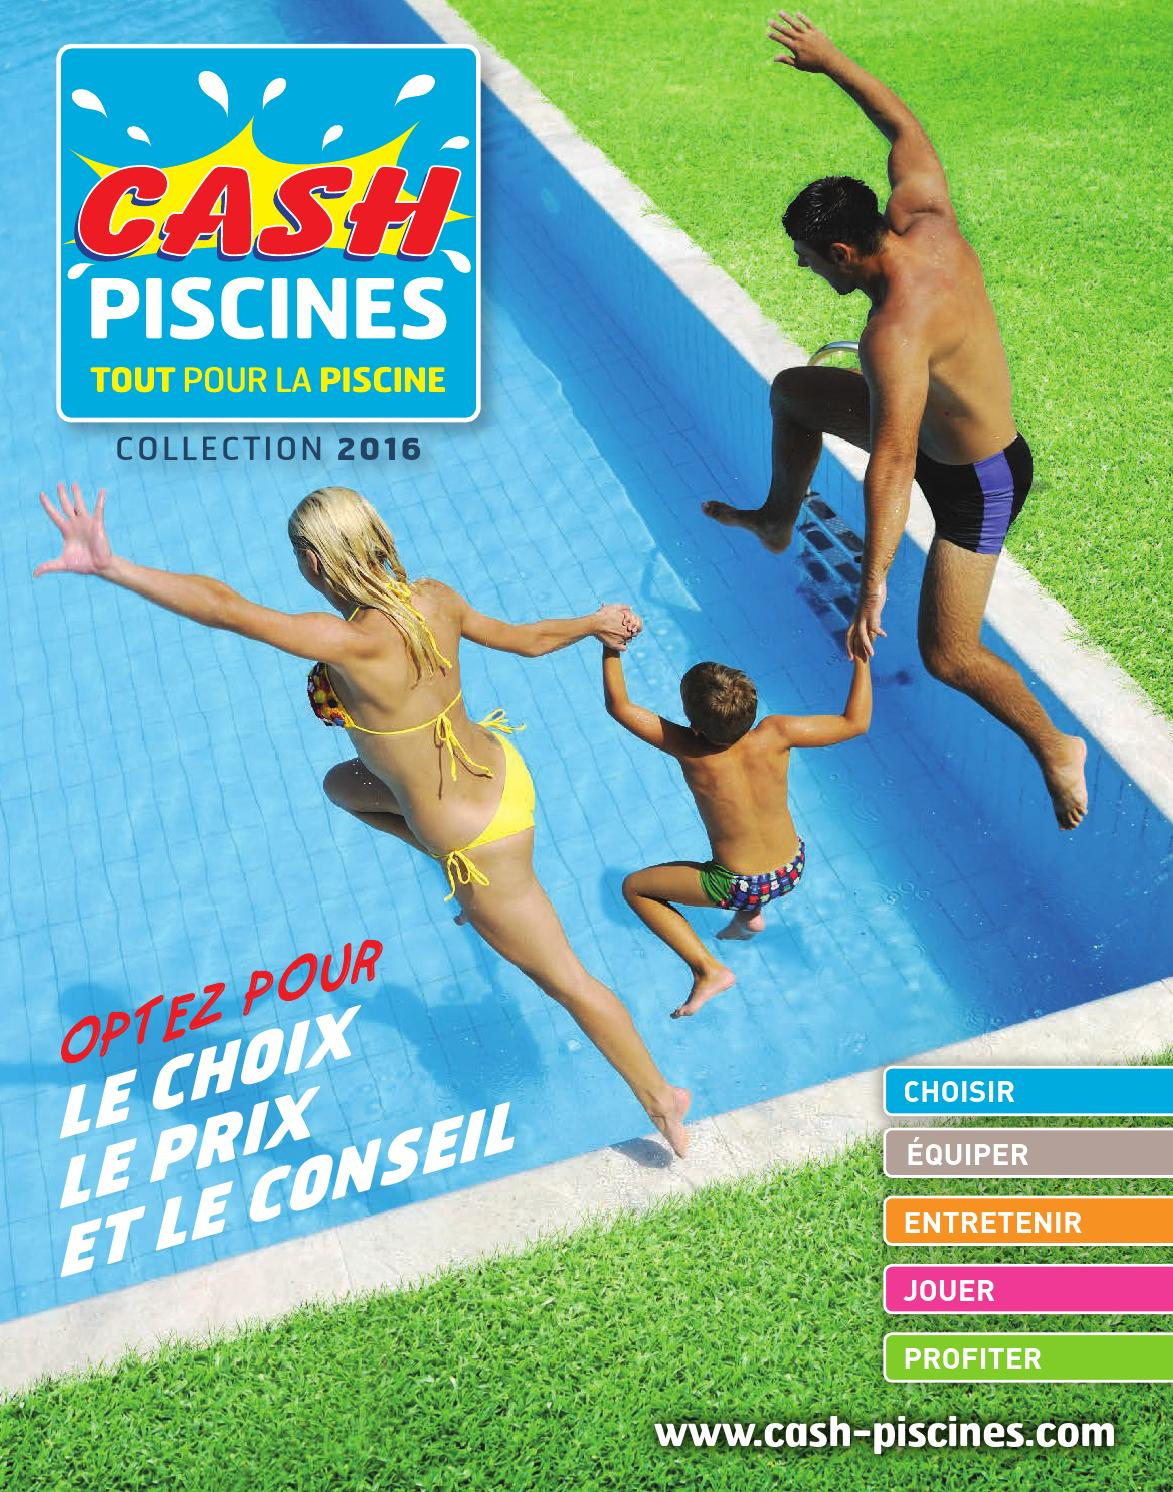 Cash piscines 2016 by octave octave issuu for Cash piscine aurillac